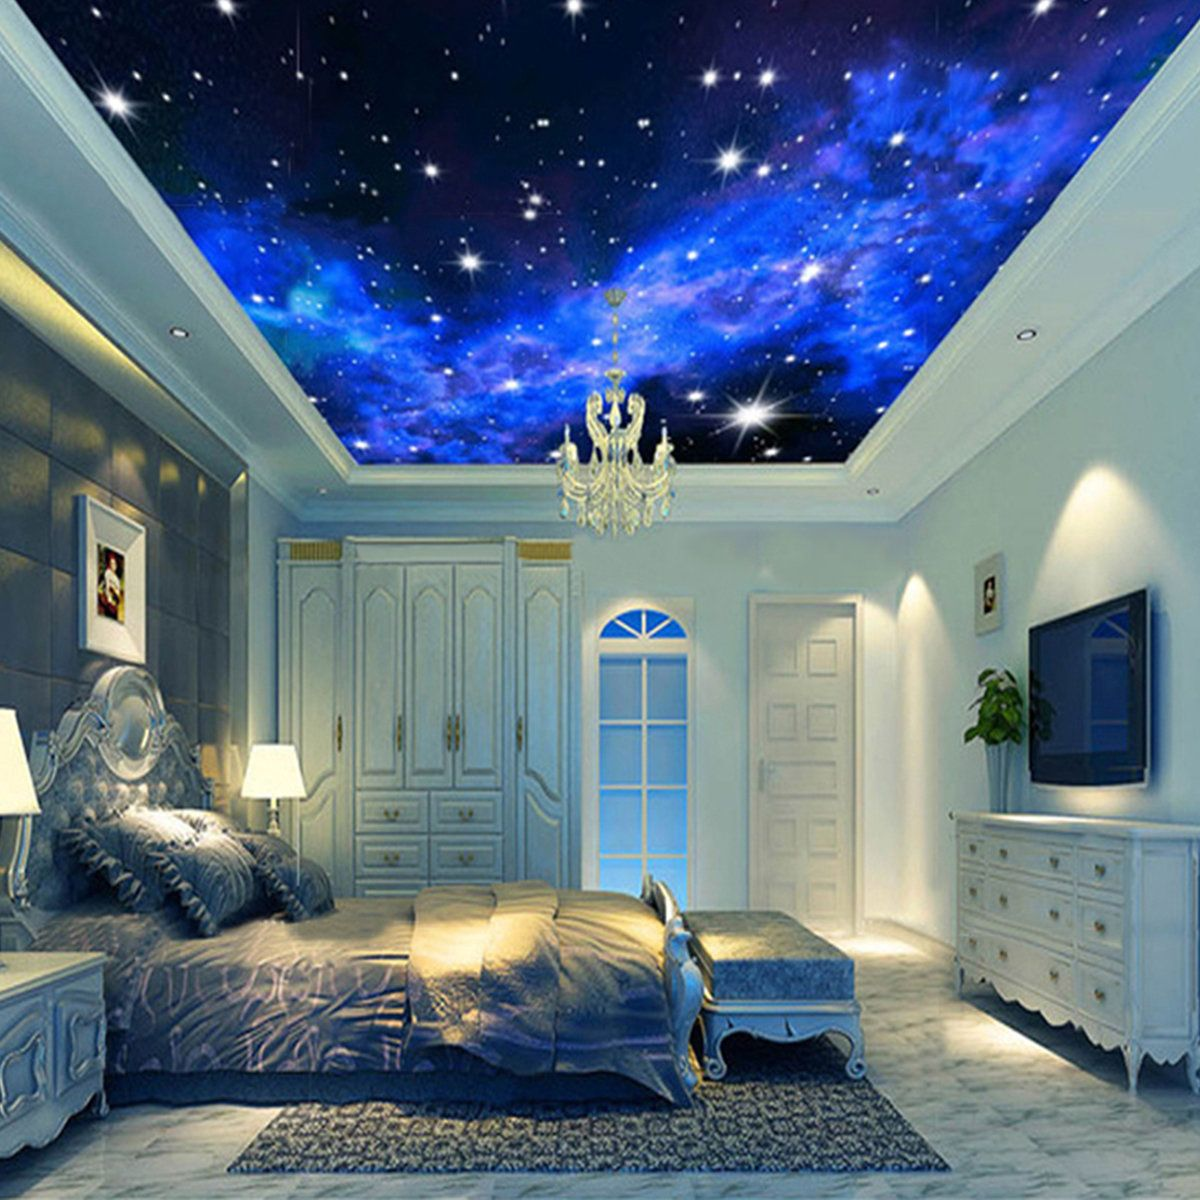 3d Wallpaper Mural Night Clouds Star Sky Wall Paper Background Interior Ceiling Home Decor Wallpaper Ceiling Ceiling Murals 3d Wallpaper Mural